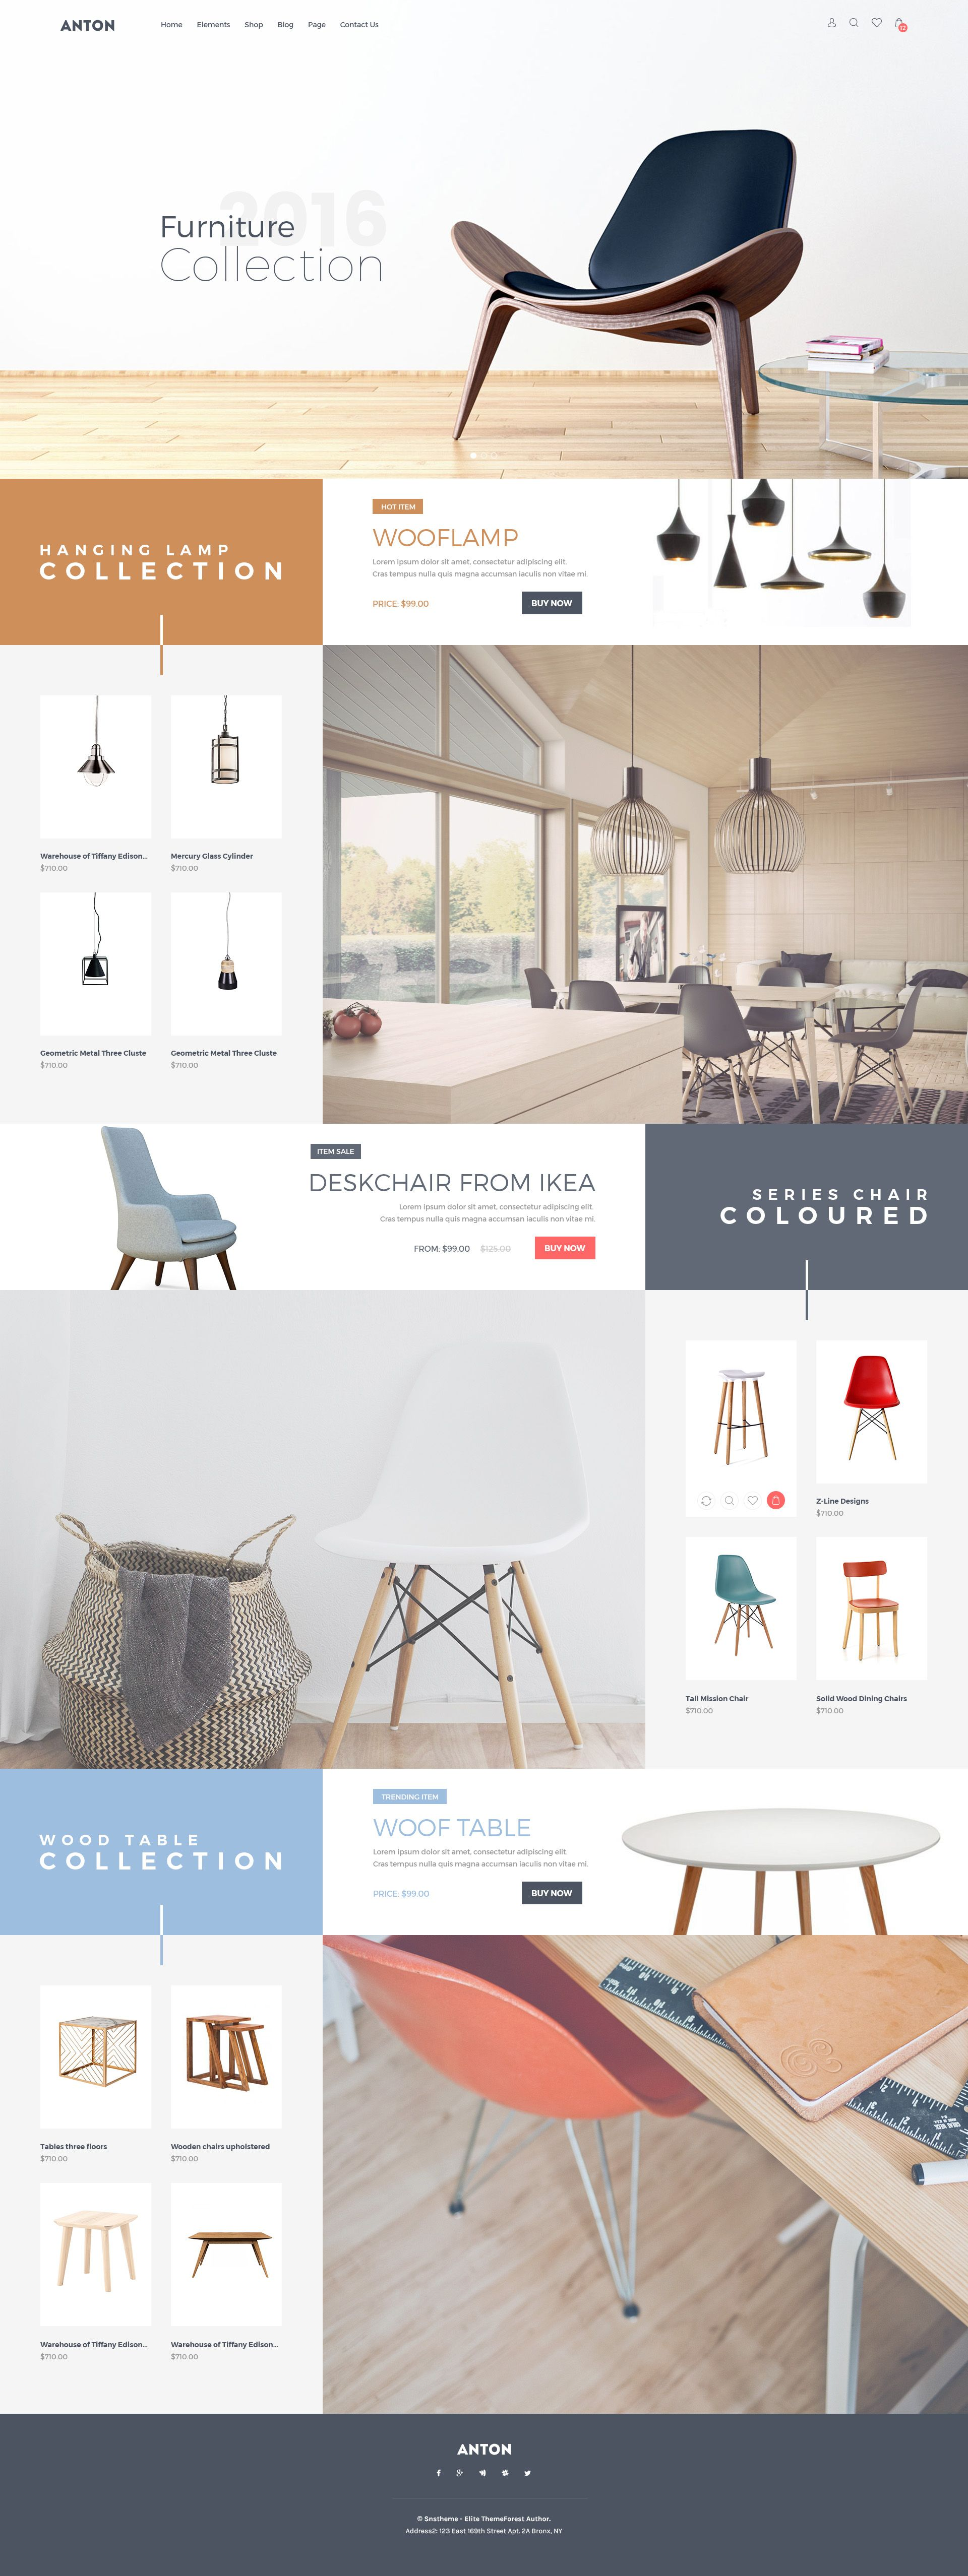 Anton Ecommerce Furniture PSD Template | eCommerce, Template and Website